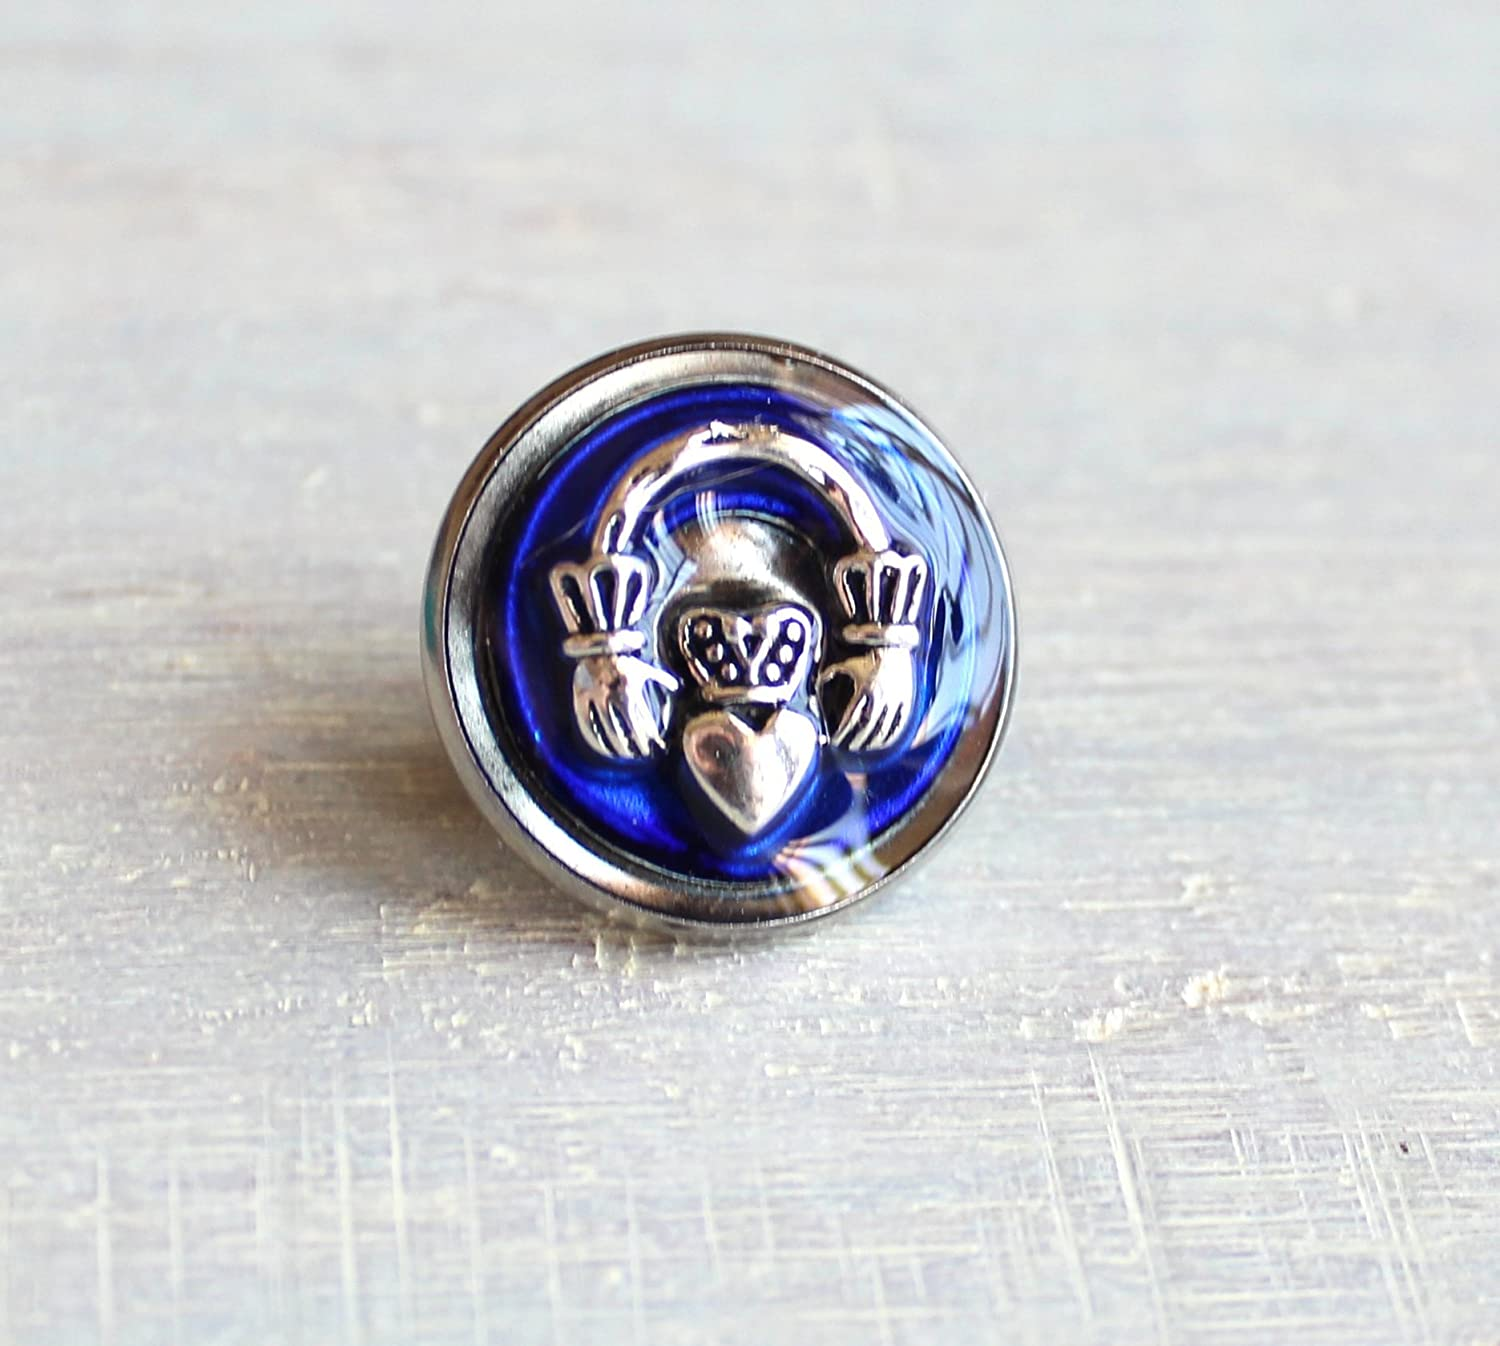 Royal blue Claddagh tie tack / lapel pin.